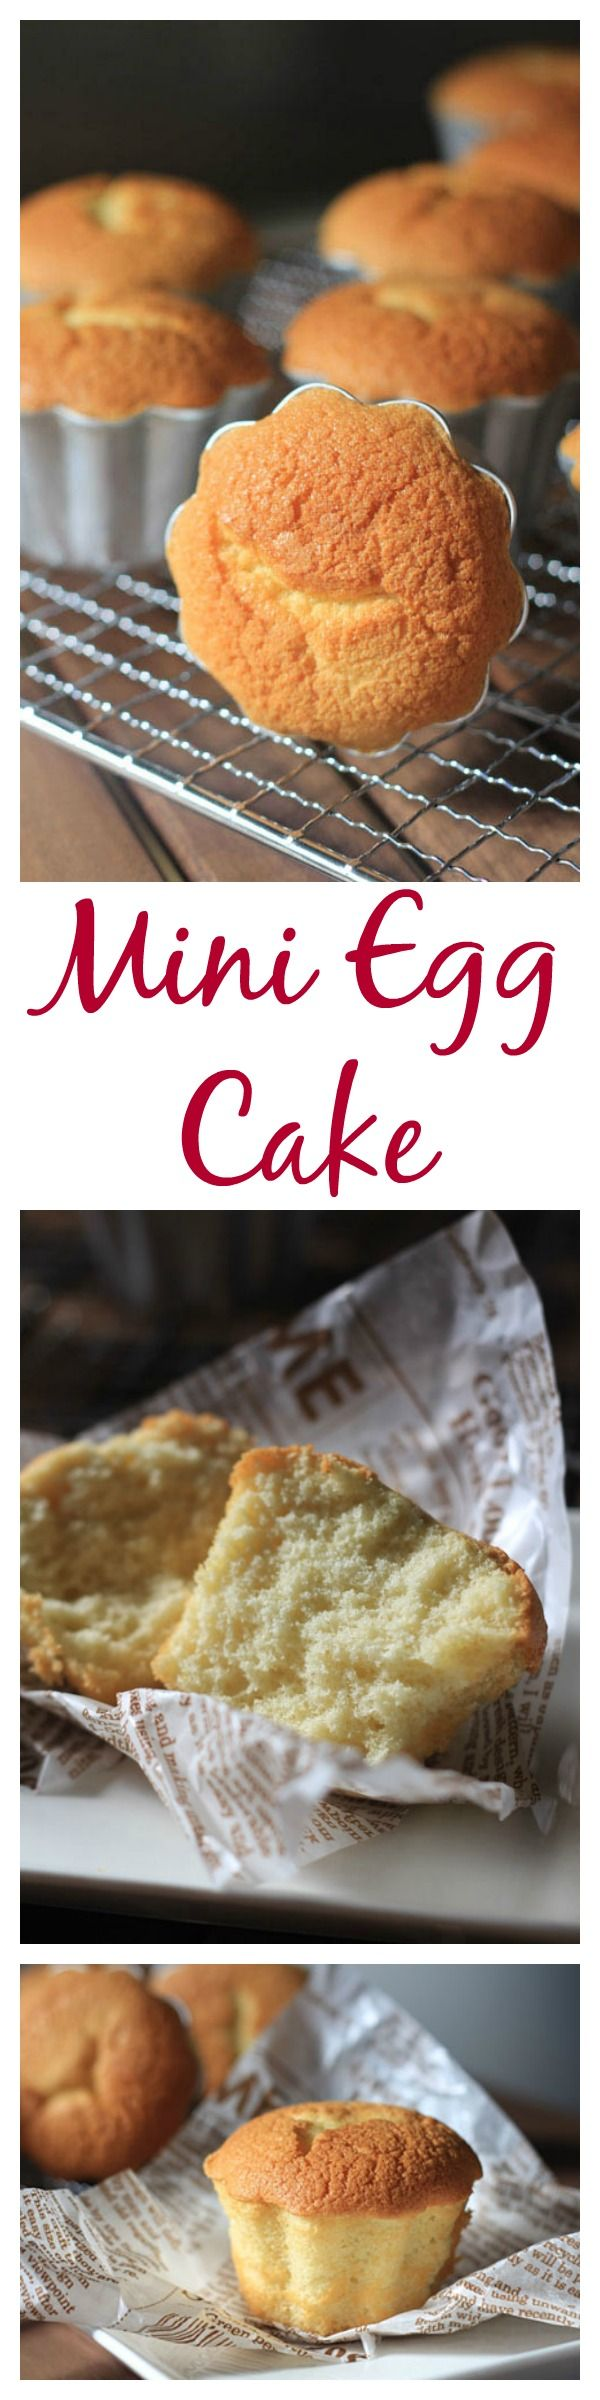 Mini egg cake. Soft, airy, light sponge cake. Learn how to make these mini cakes | rasamalaysia.com